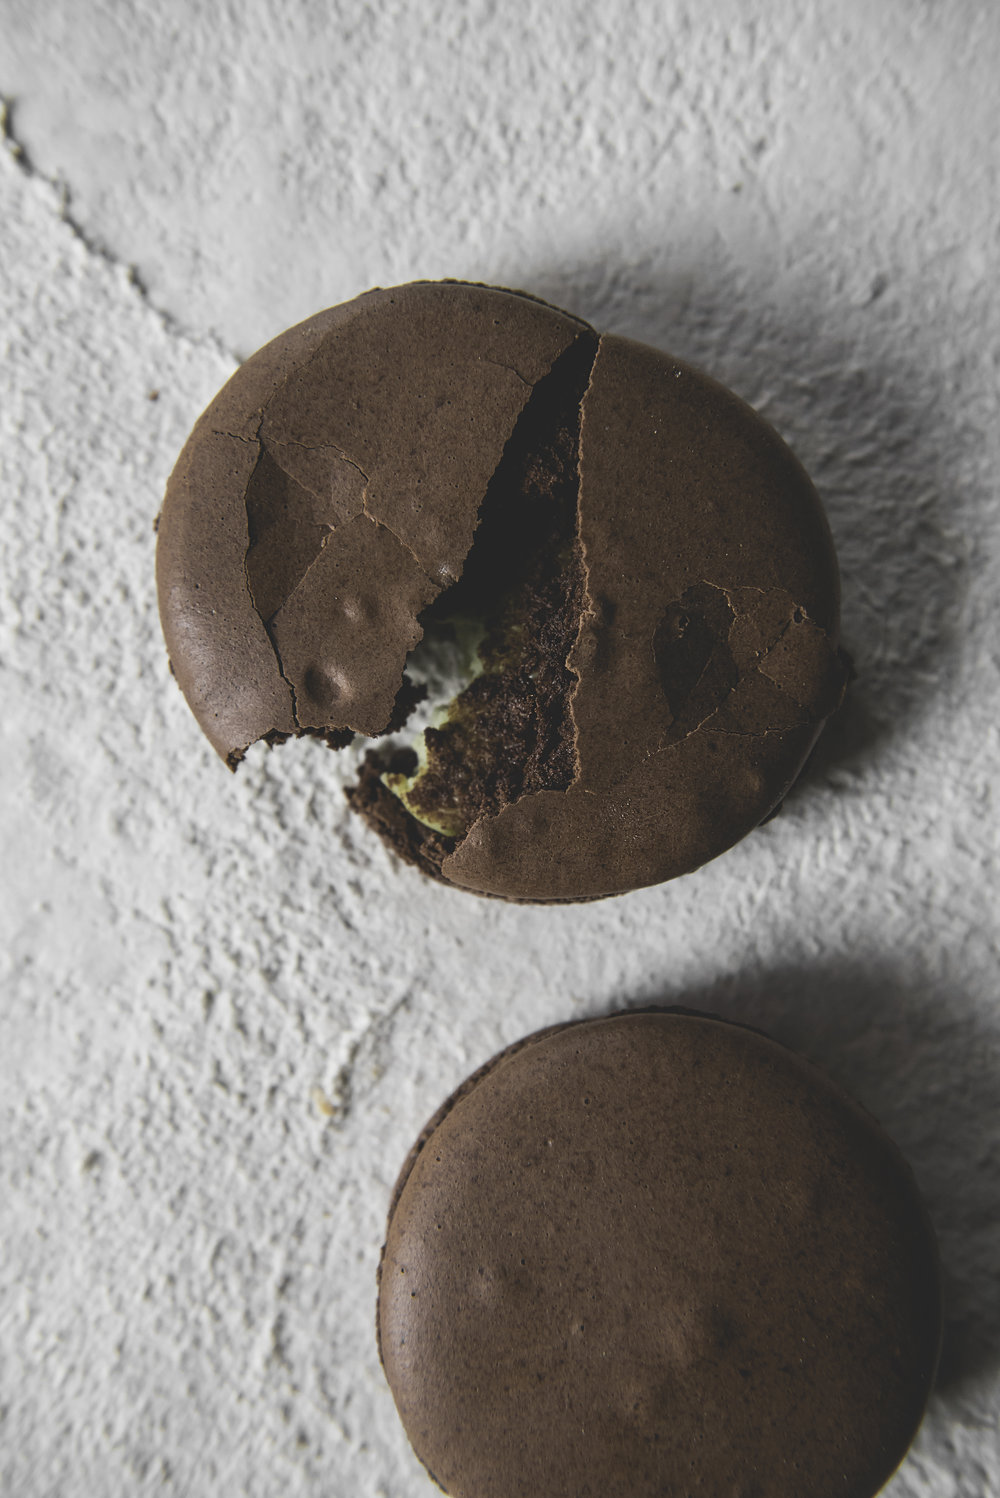 Chocolate Avocado Macaron - Chocolate macaron shell with a white chocolate avocado filling. Pair with a milky macchiato.